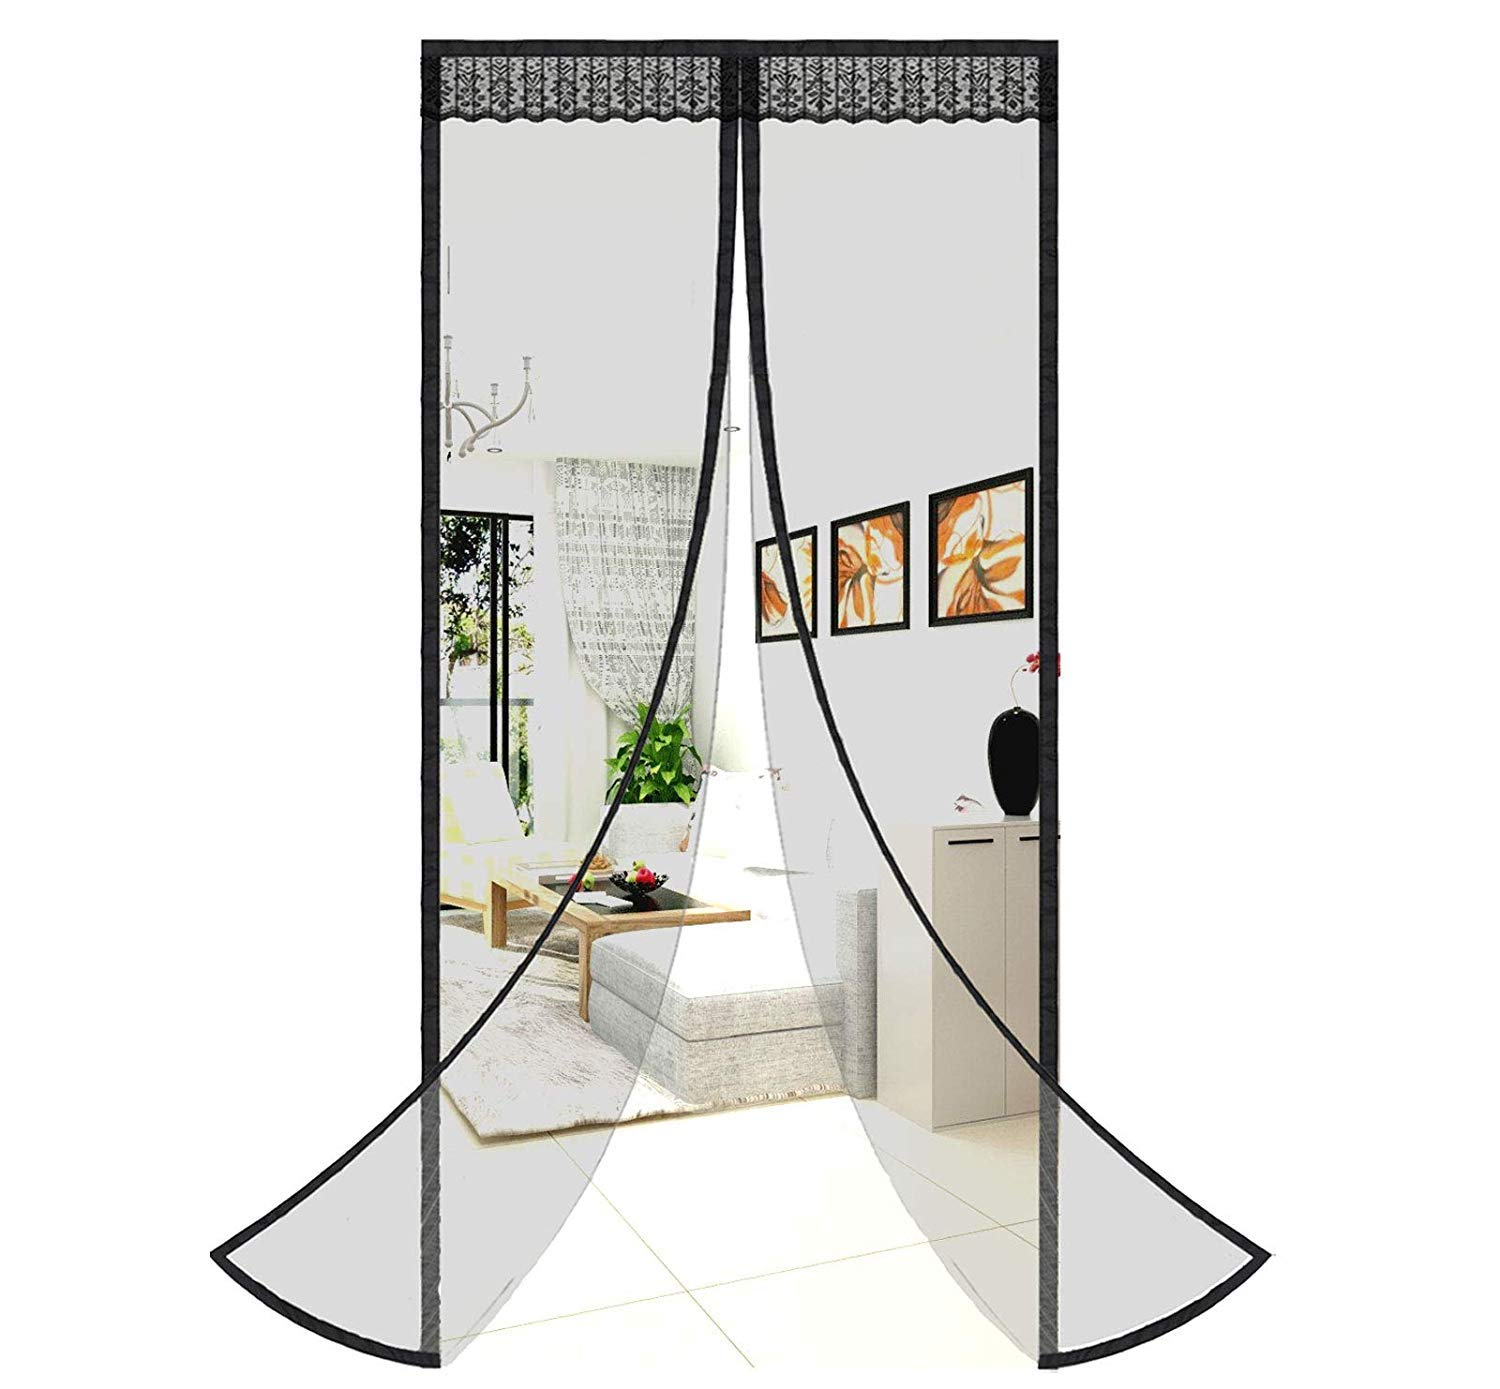 MODKOY Magnetic Screen Door Curtain 94x106inch, Black mesh Curtain, Magnetic adsorption Foldable Easy to Install, for Living Room/Patio Door by MODKOY